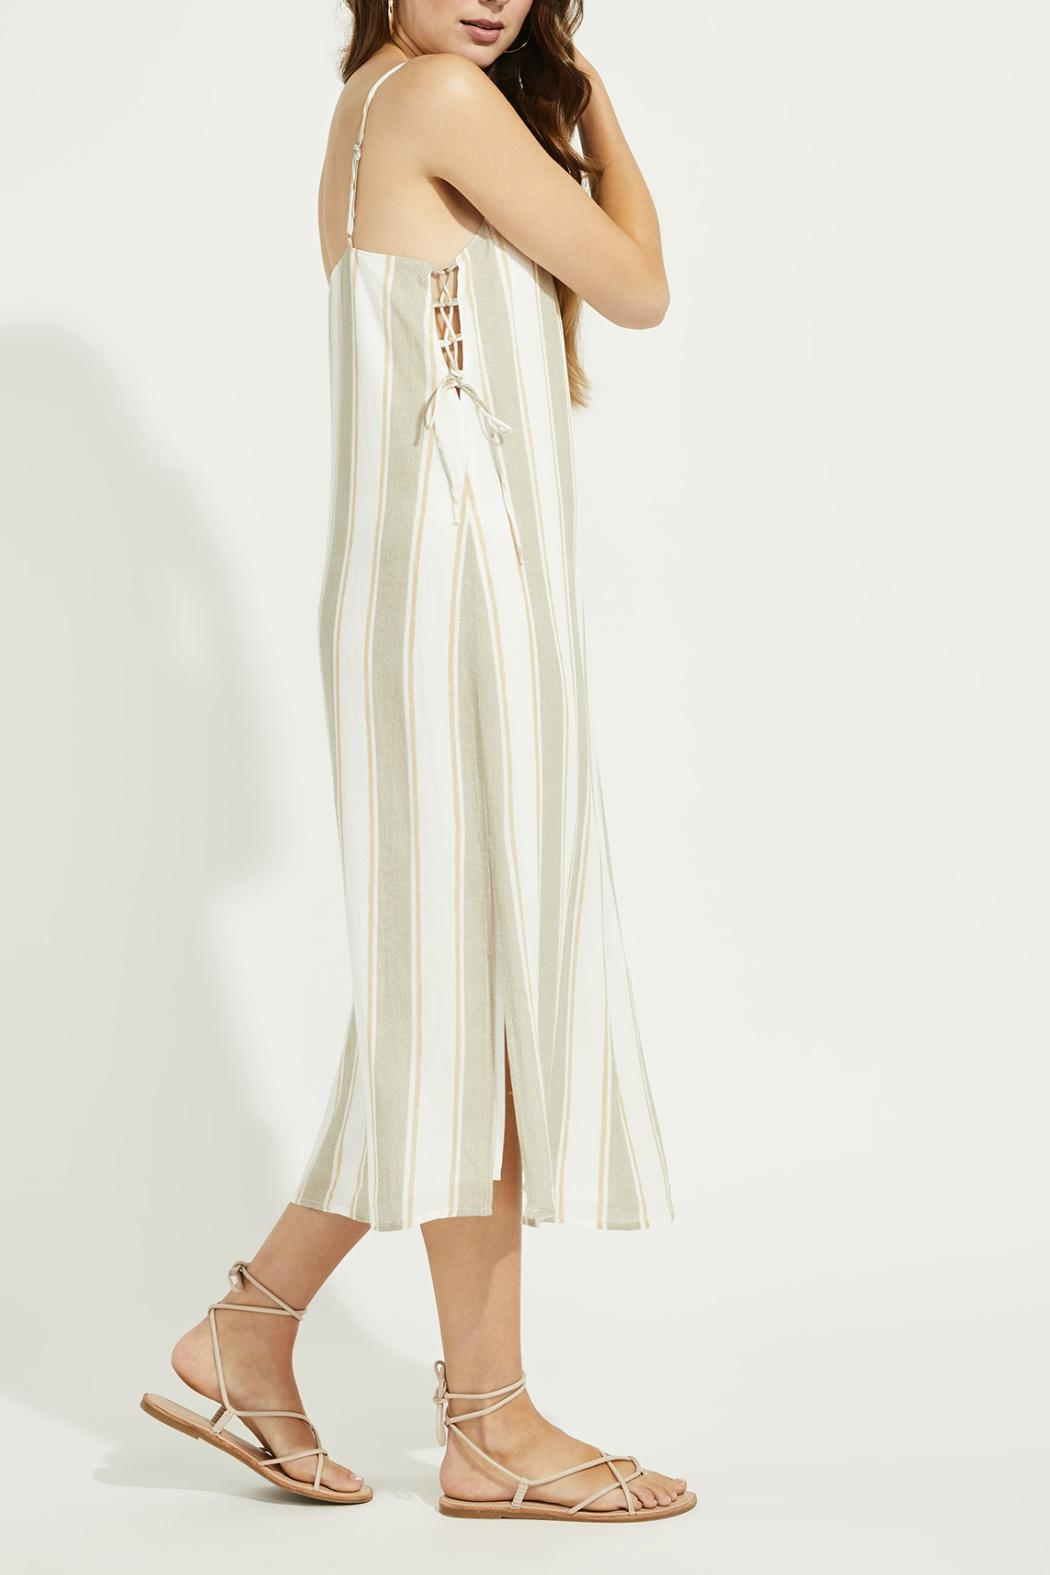 Gentle Fawn Side Lace Up Dress - Side Cropped Image